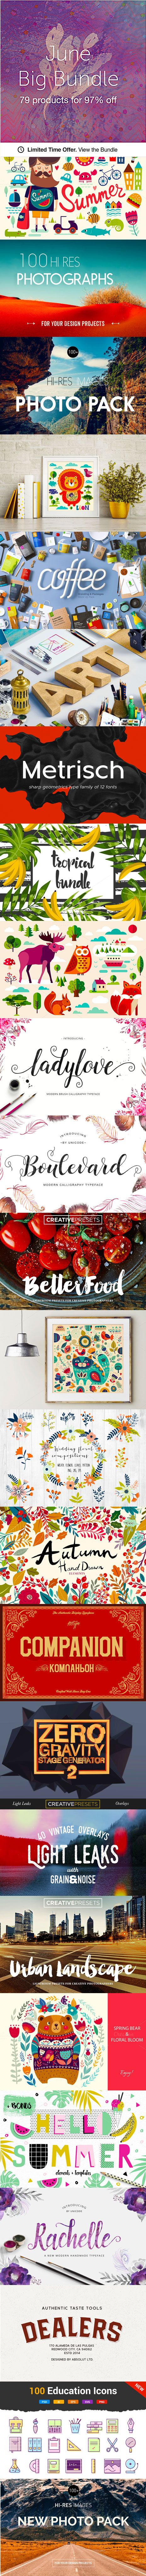 23 best Stationary & Branding Templates images on Pinterest